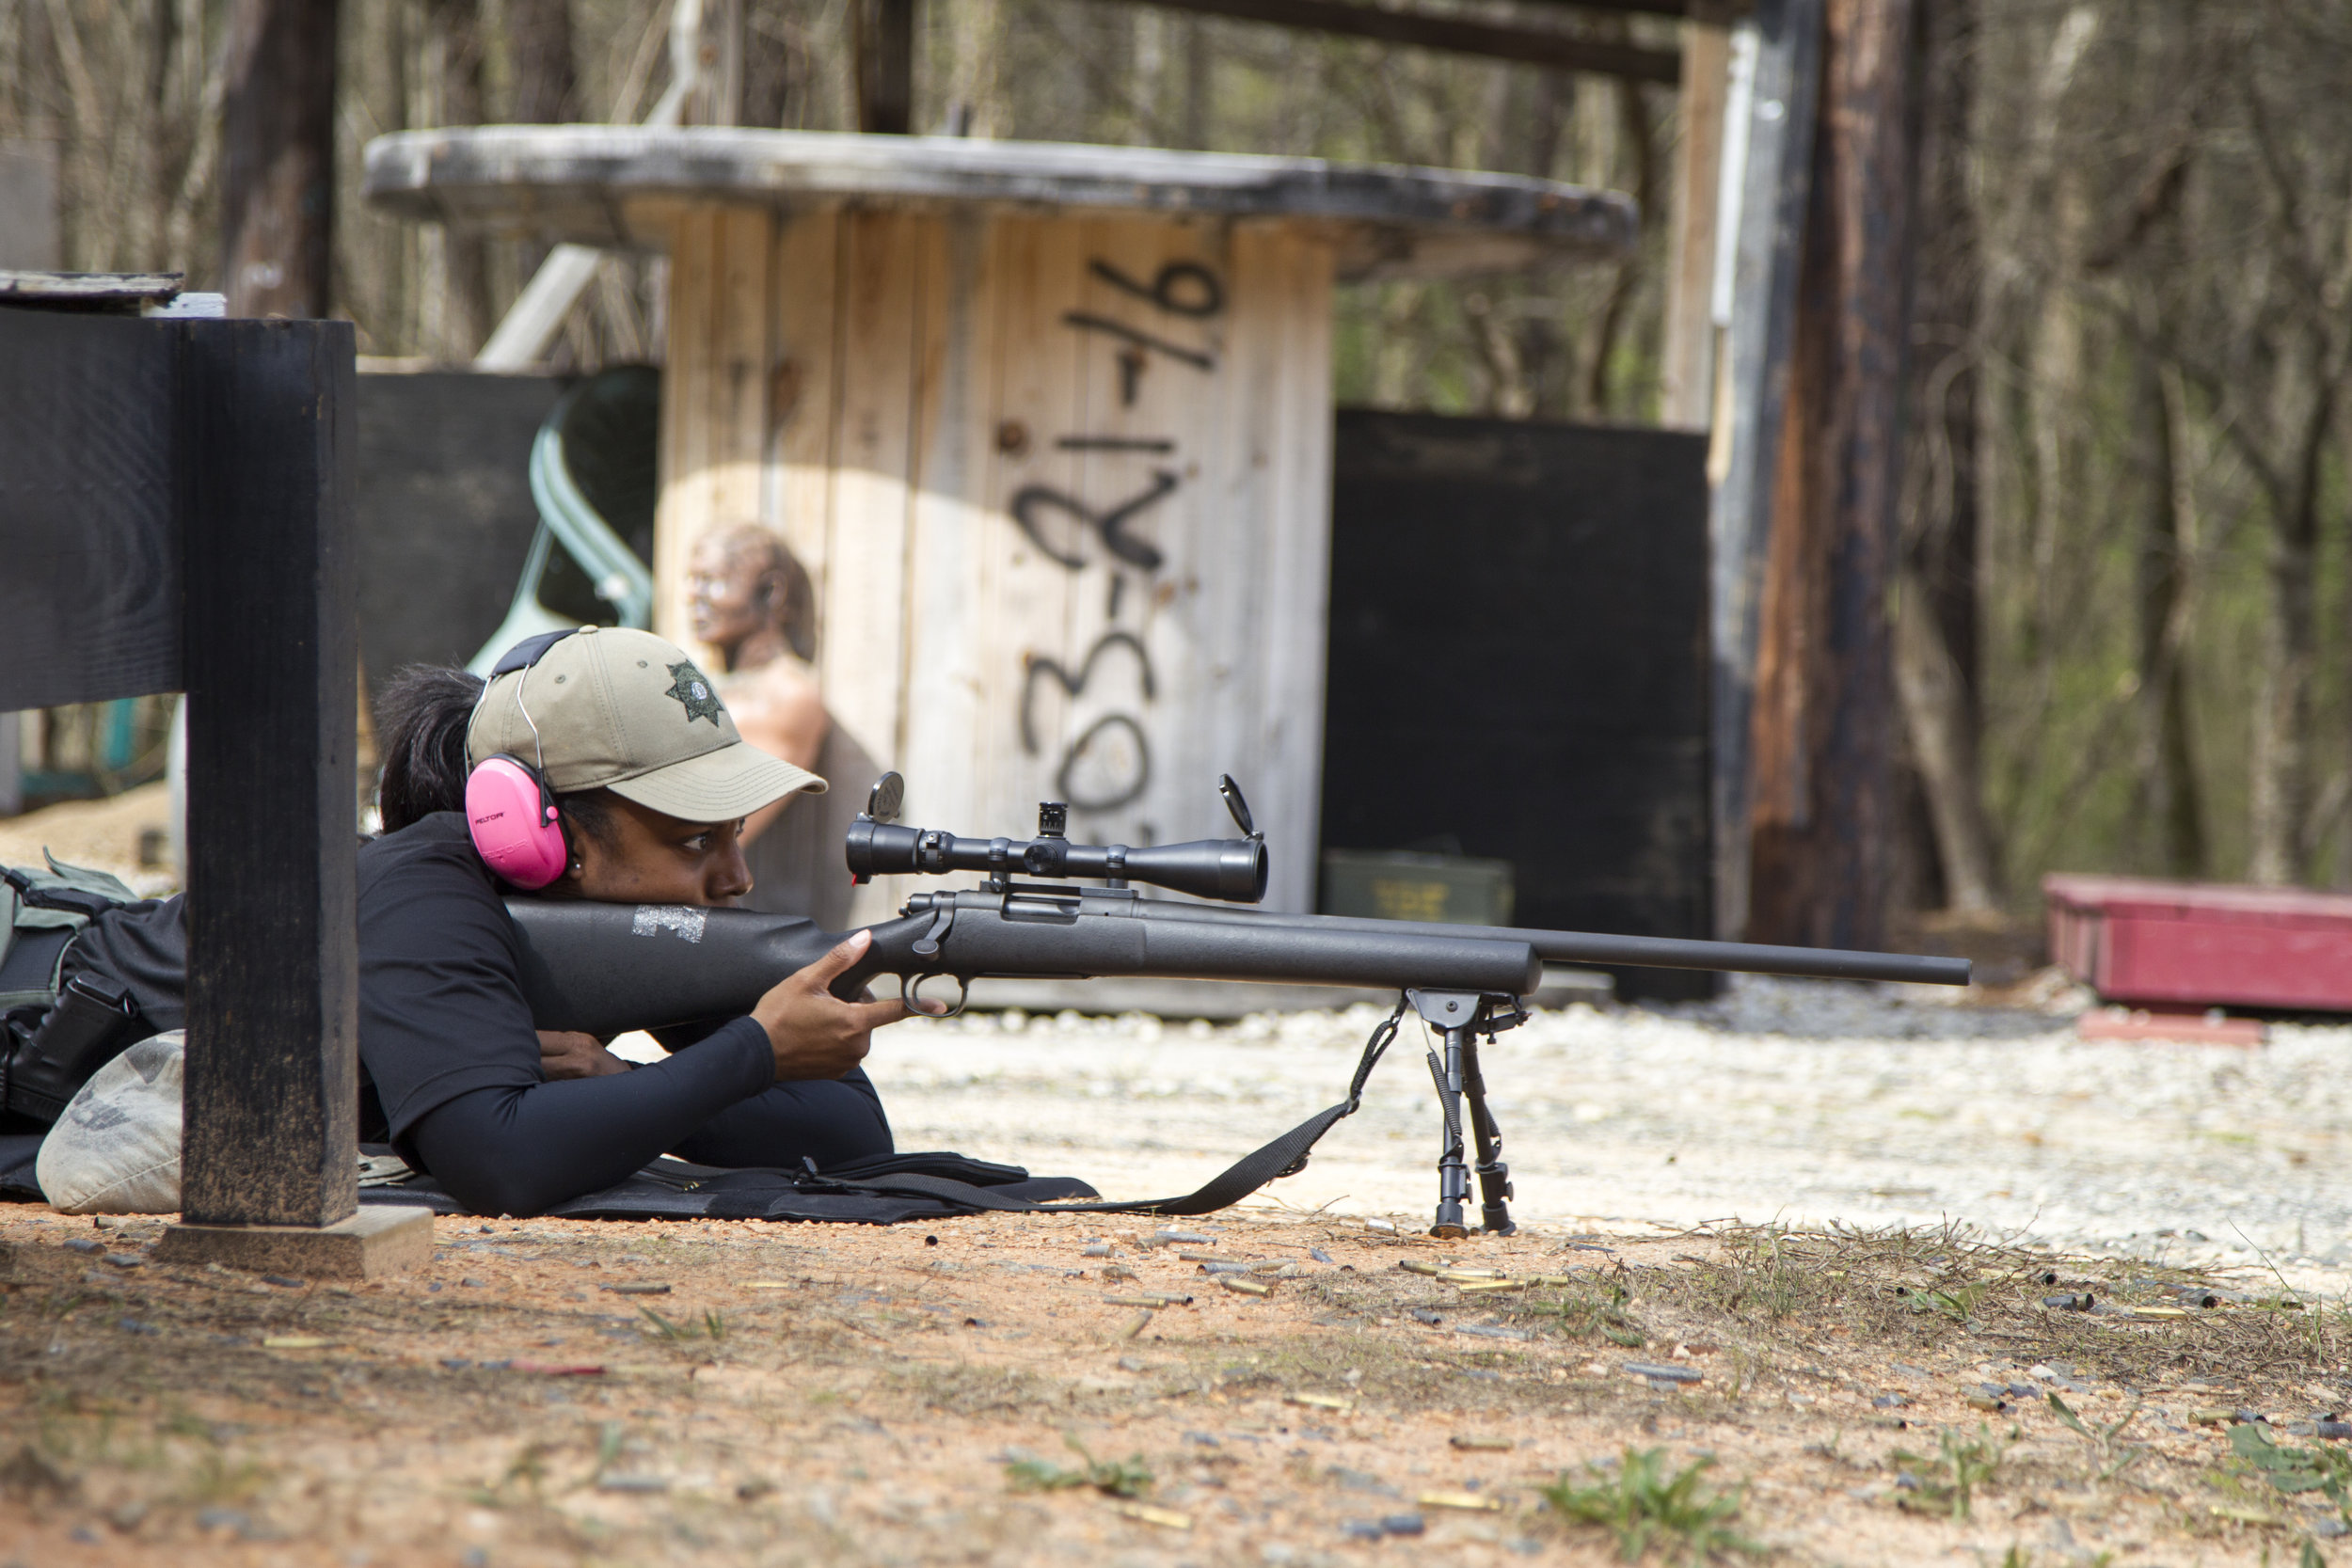 LaShira Norwood, 31, a Fulton County deputy, prepares to fire a Remington 700 sniper rifle at the David L. Hagins Firing Range in Atlanta, Georgia, on Monday, April 2, 2018. Norwood is Fulton County Sheriff Office's first female sniper.